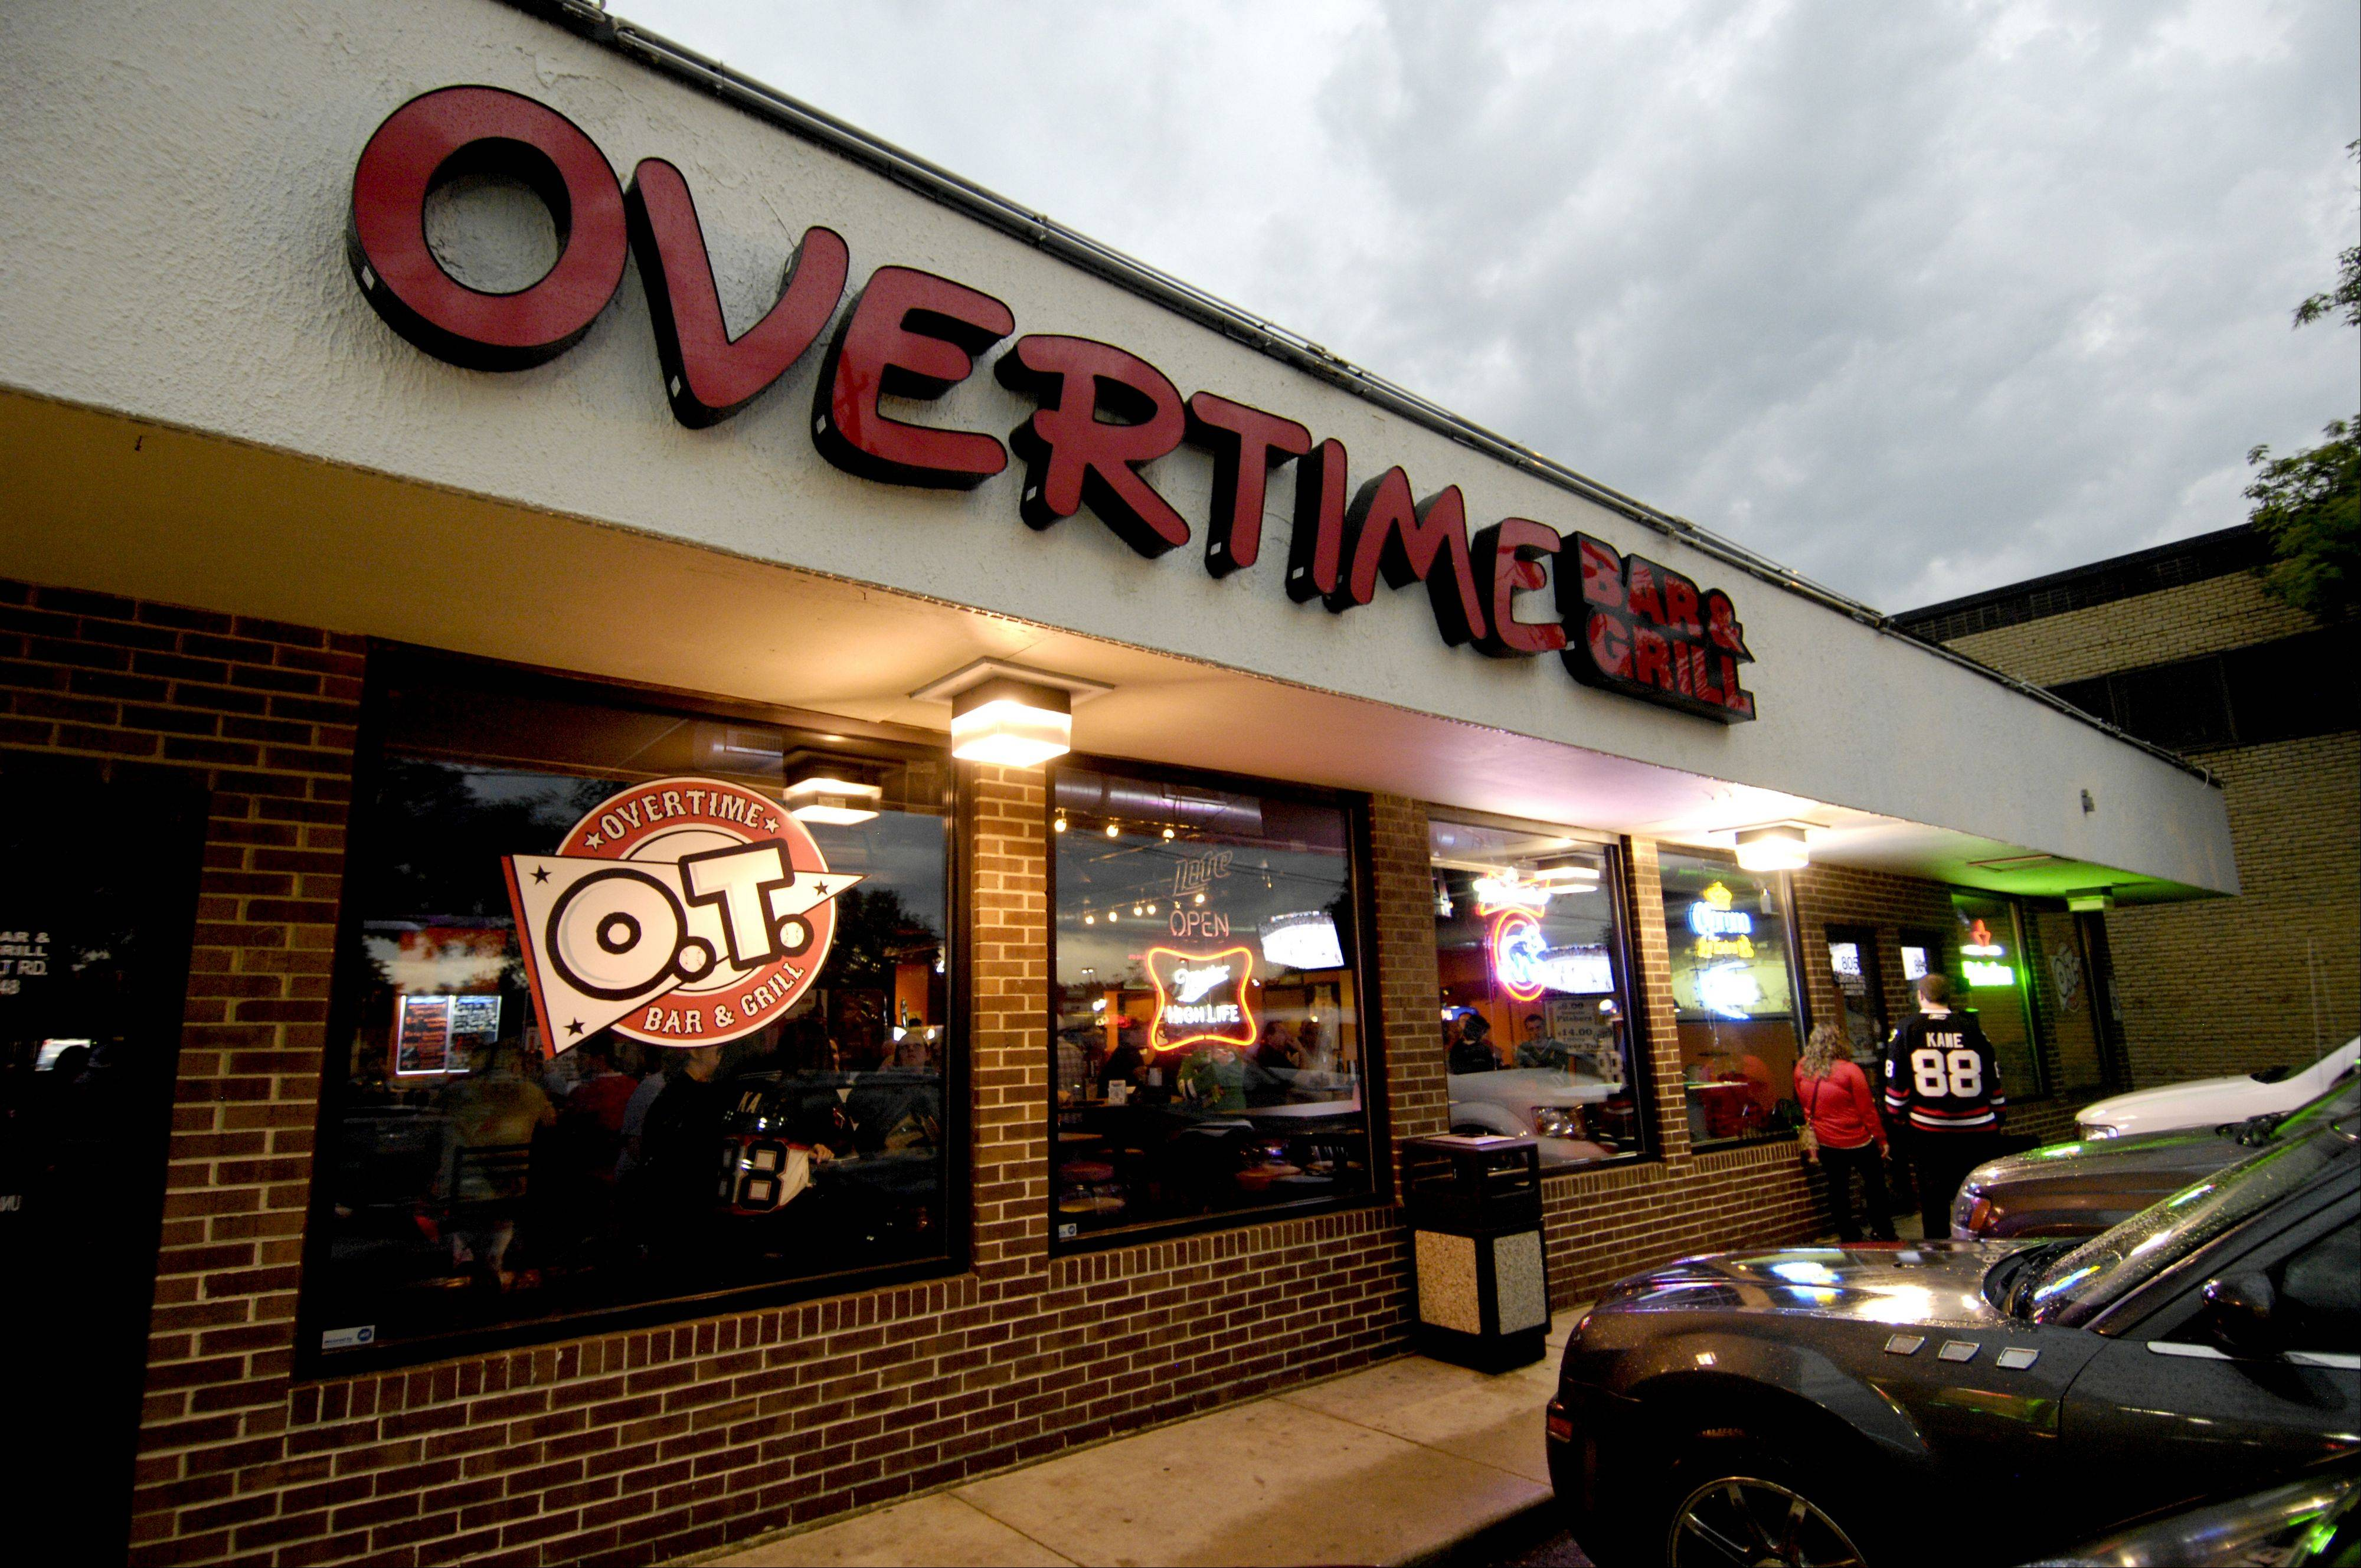 Lombard's Overtime Bar & Grill opened in December.